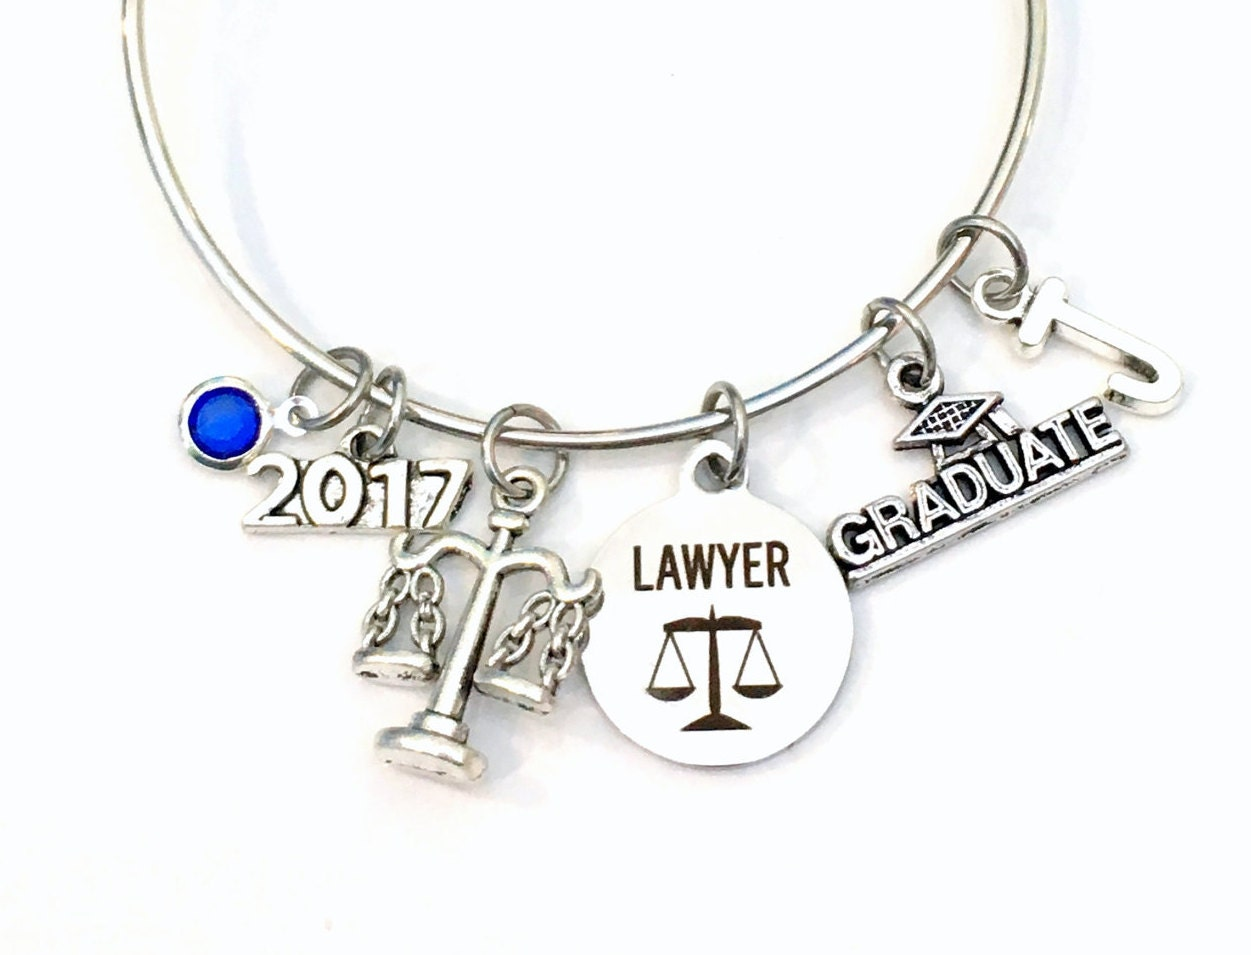 law school graduation gift 2017 2018 lawyer charm bracelet